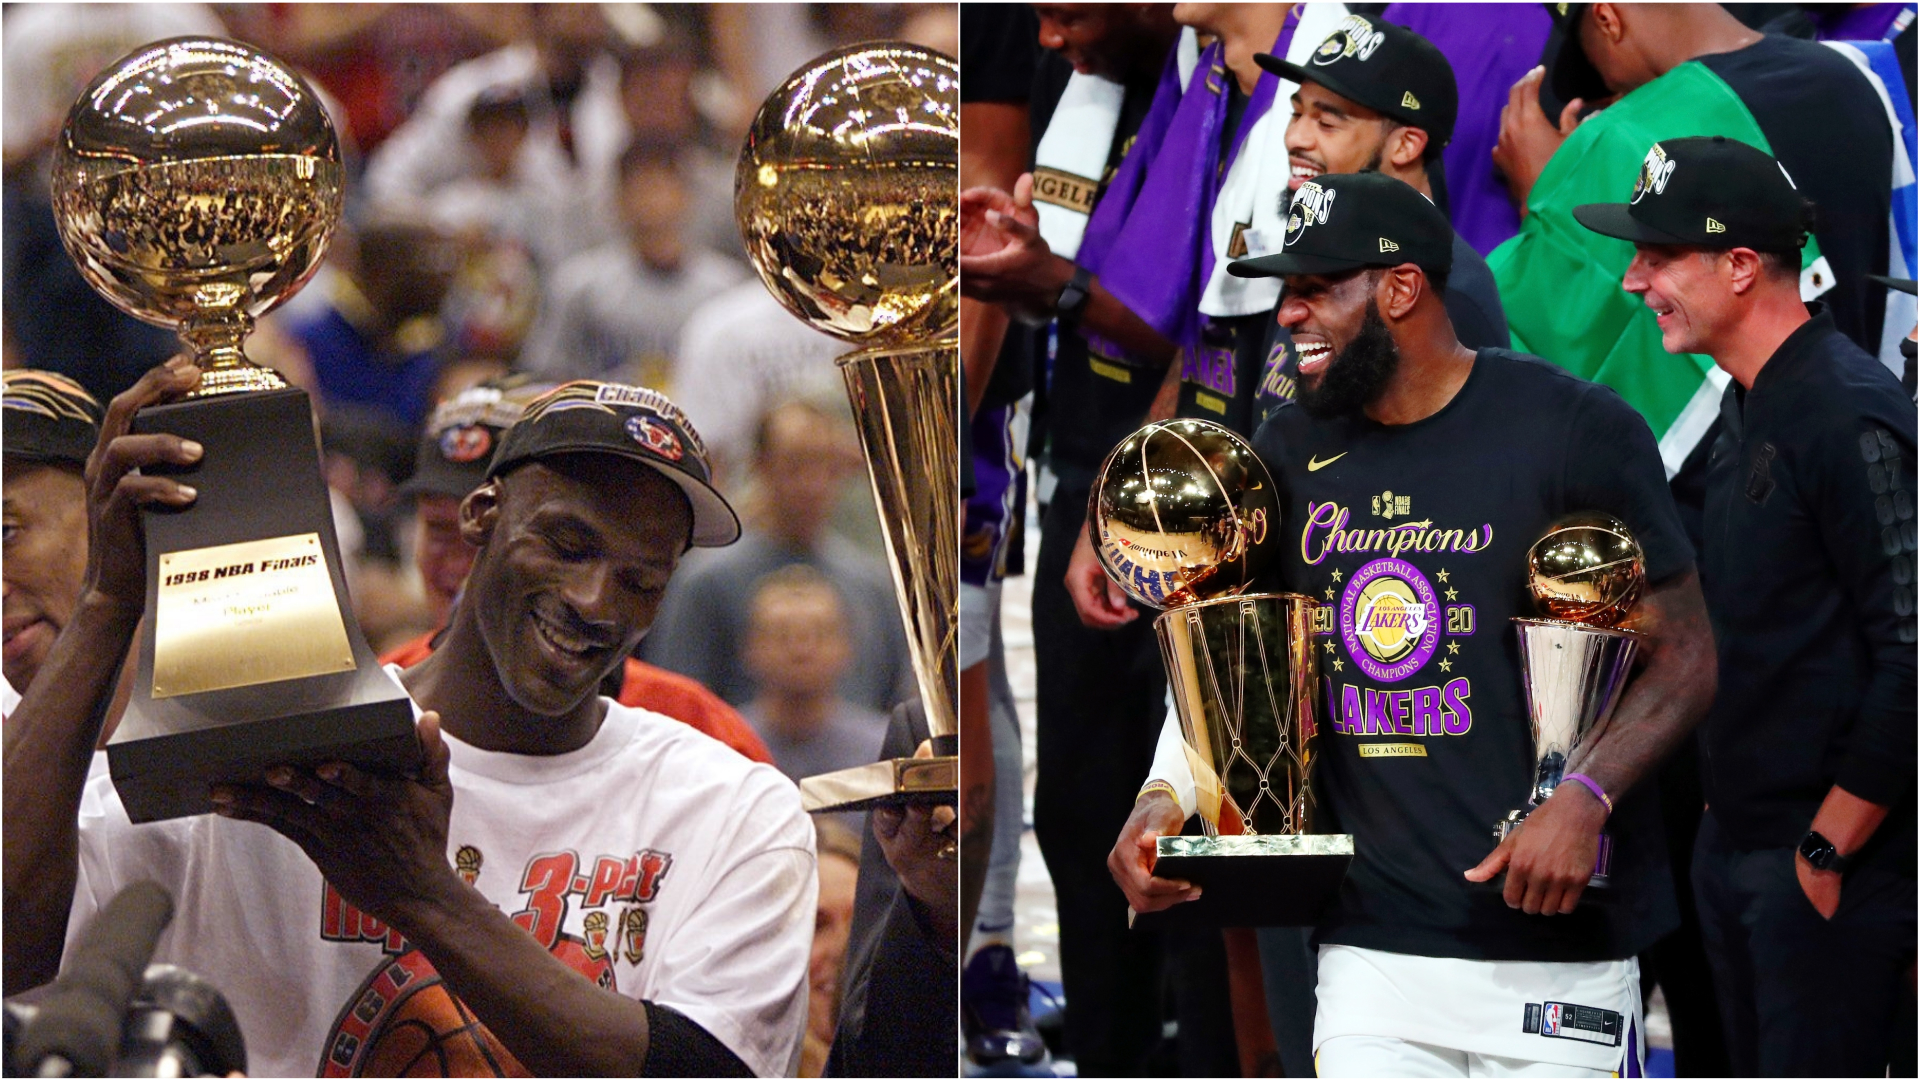 Stop trying to force LeBron James as the G.O.A.T. over Michael Jordan